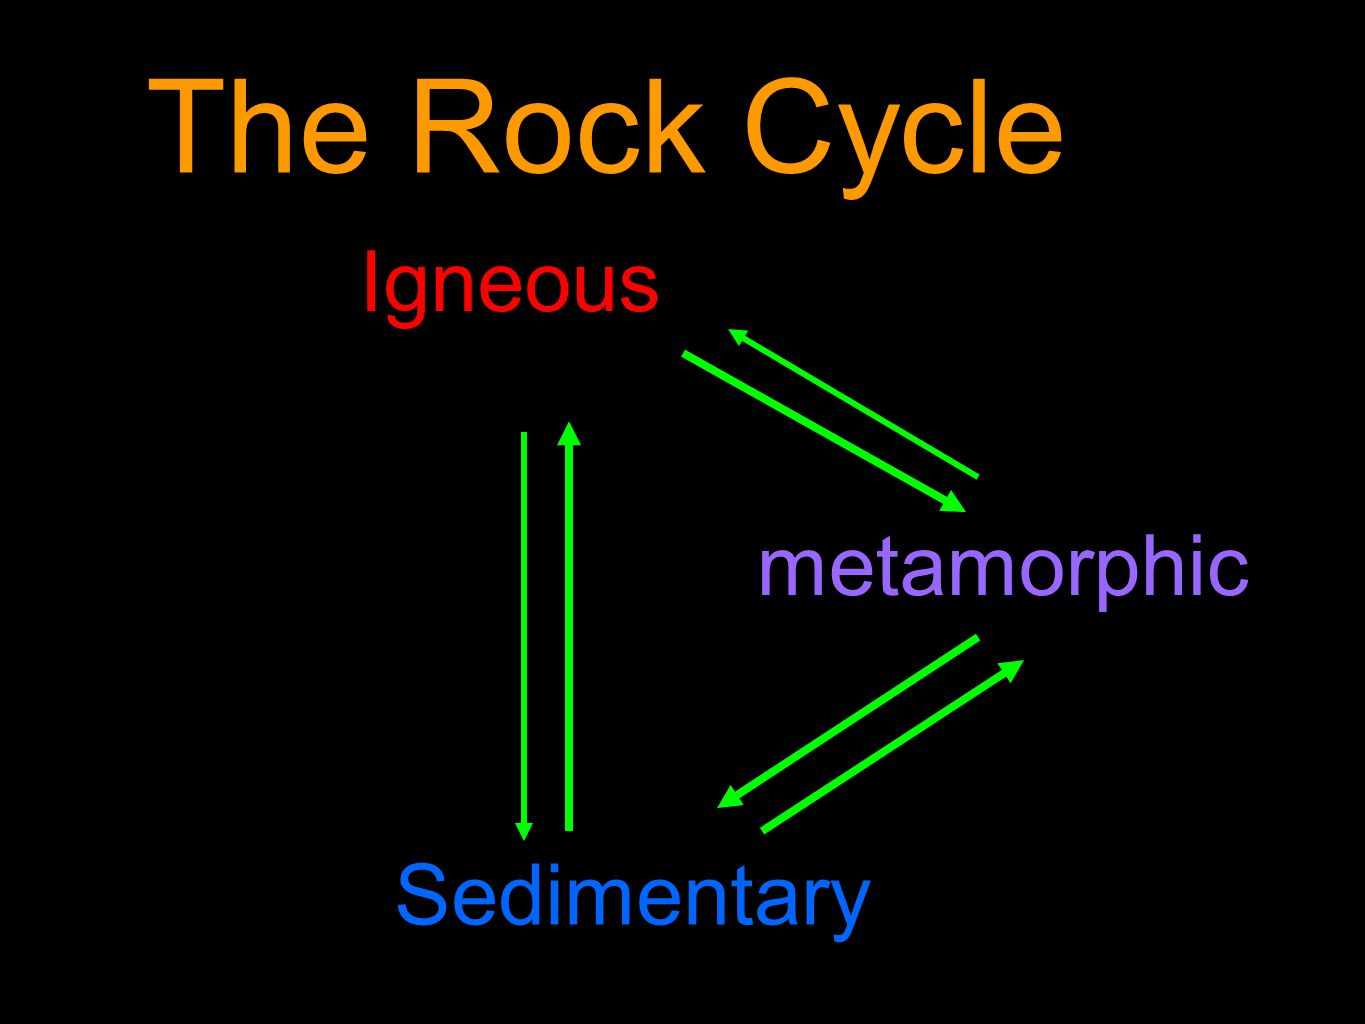 Igneous metamorphic Sedimentary The Rock Cycle